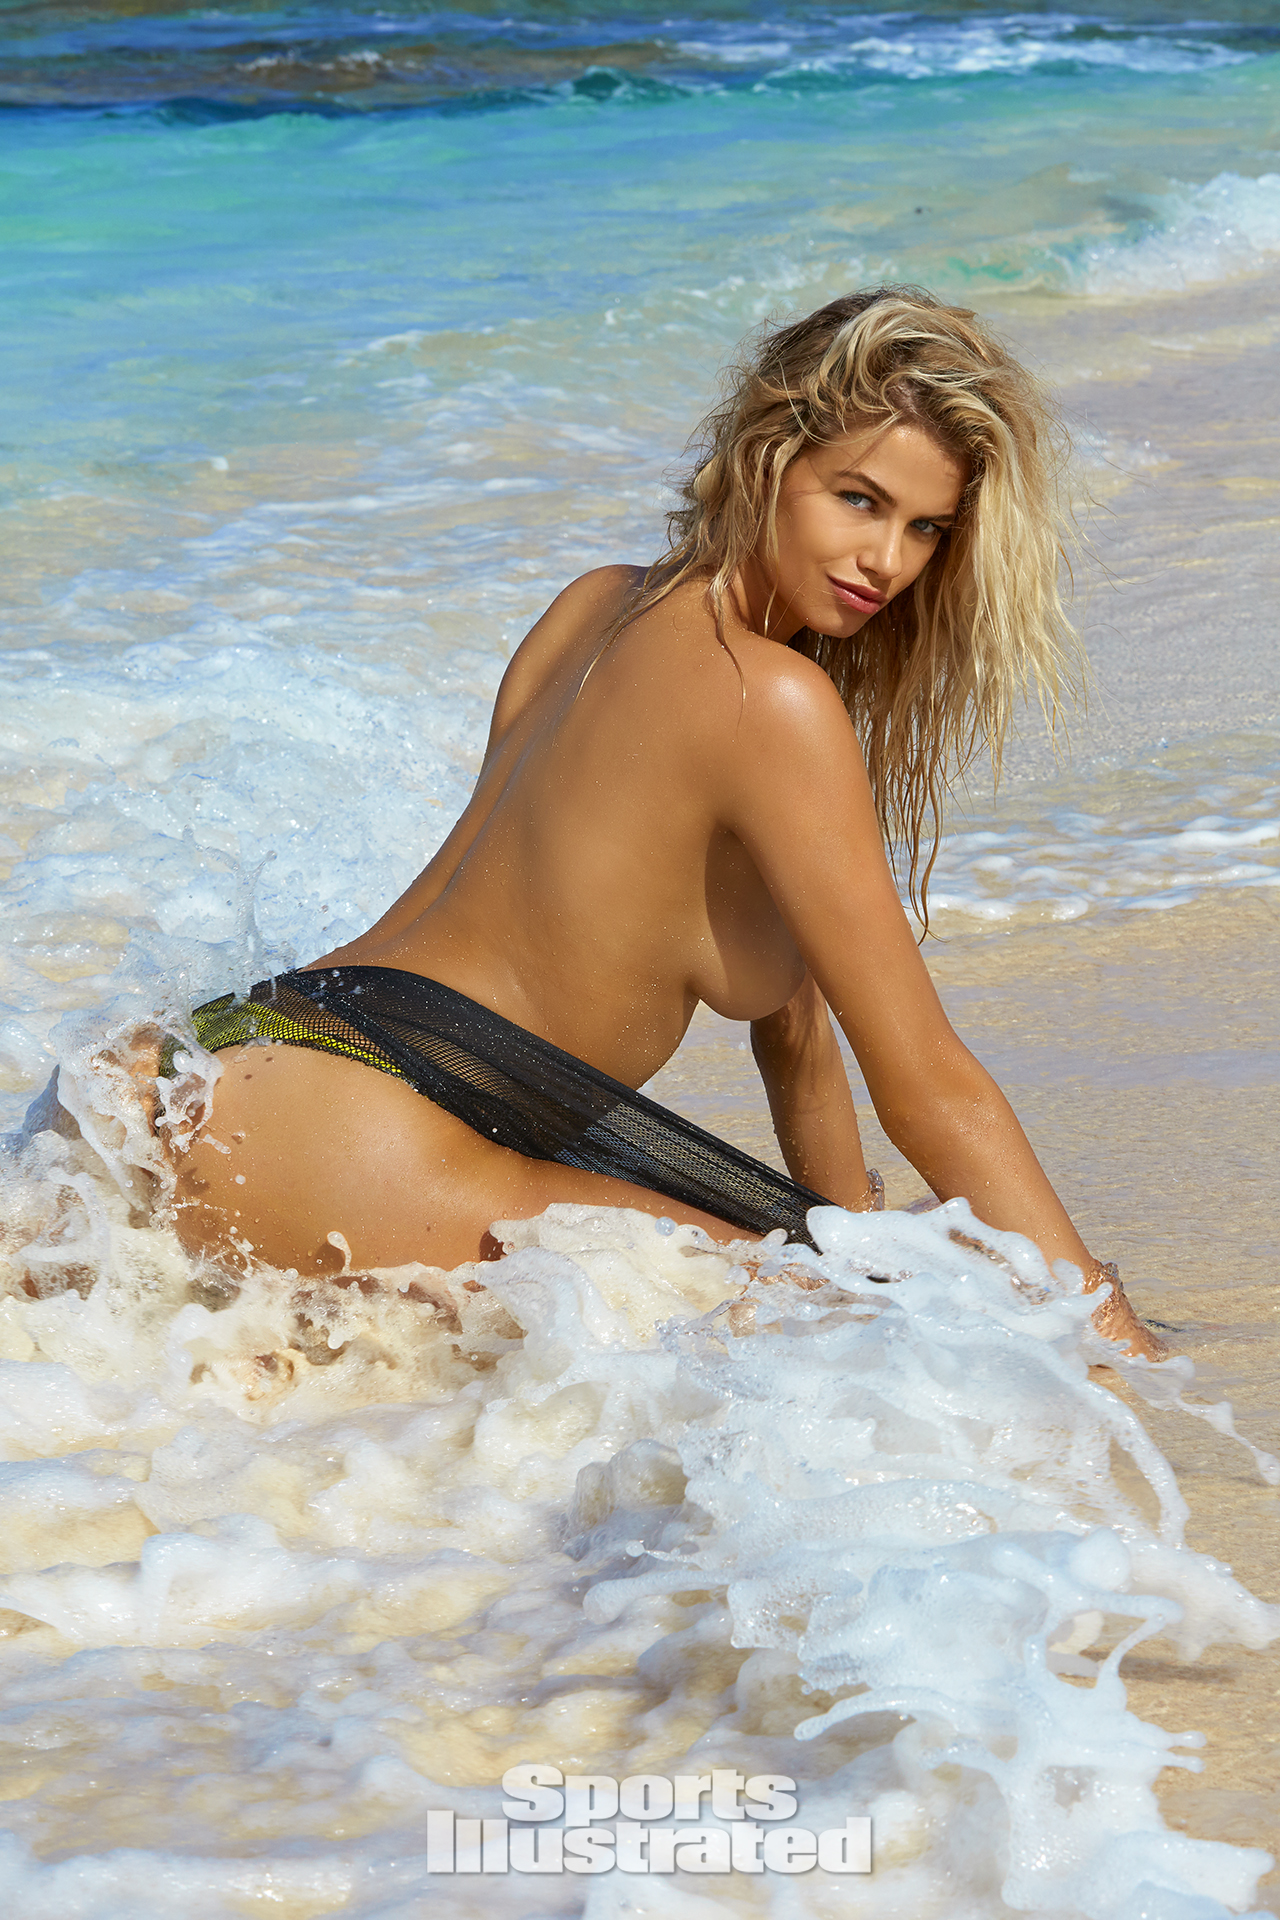 Hailey Clauson was photographed by James Macari in Turks & Caicos. Top by Diesel. Swimsuit by Noe Garments.